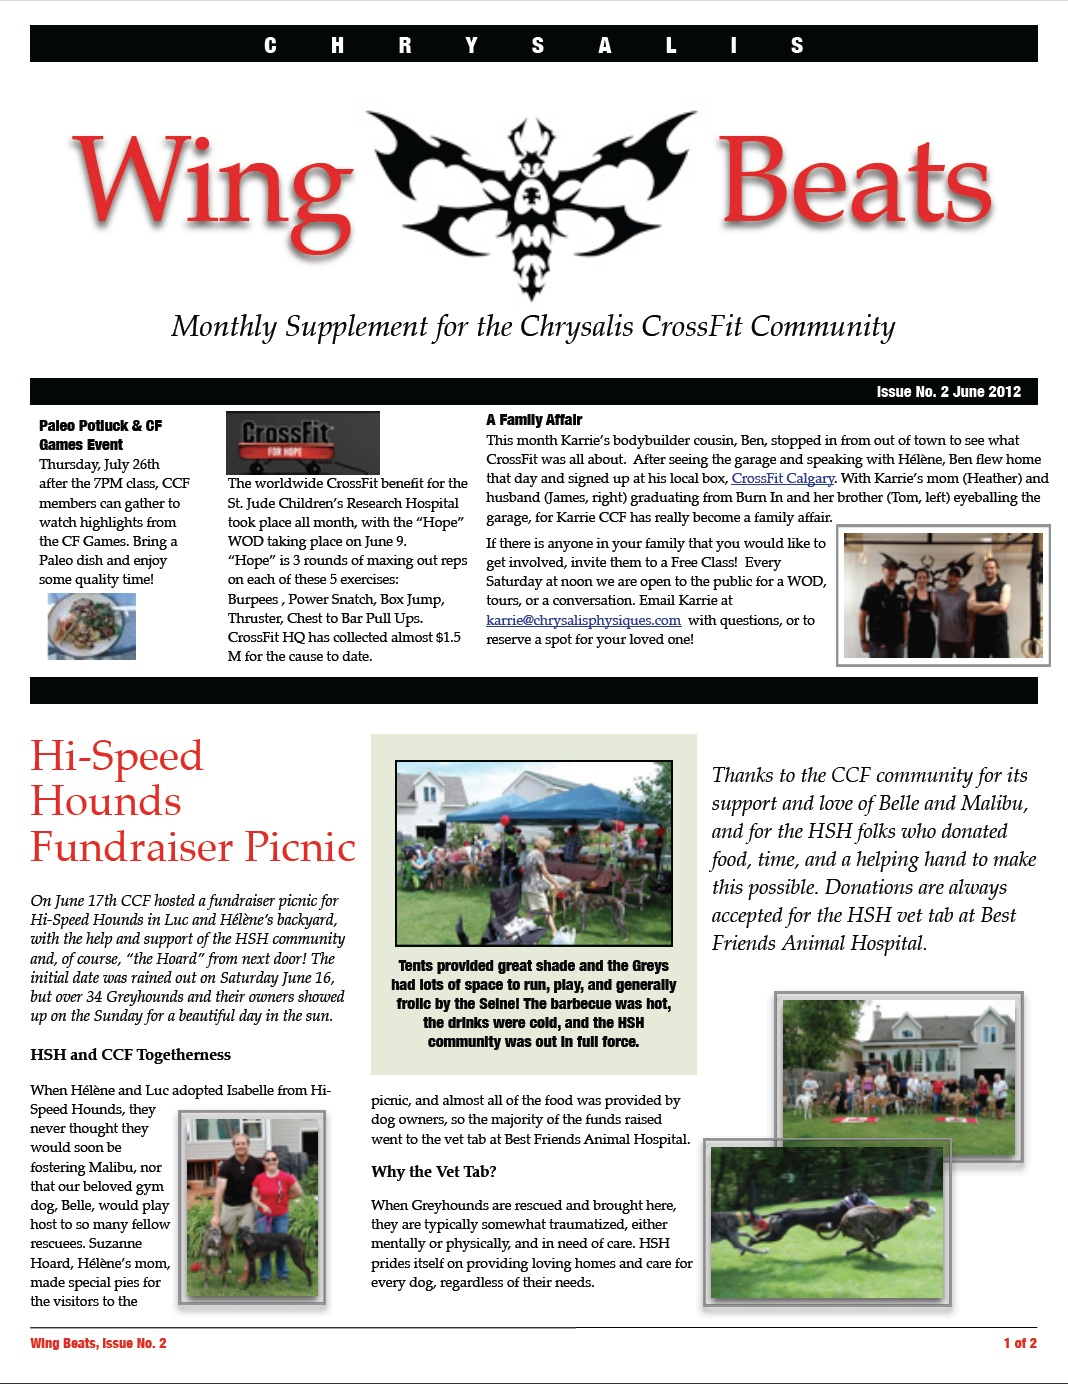 WingBeats Issue #2 - June 2012